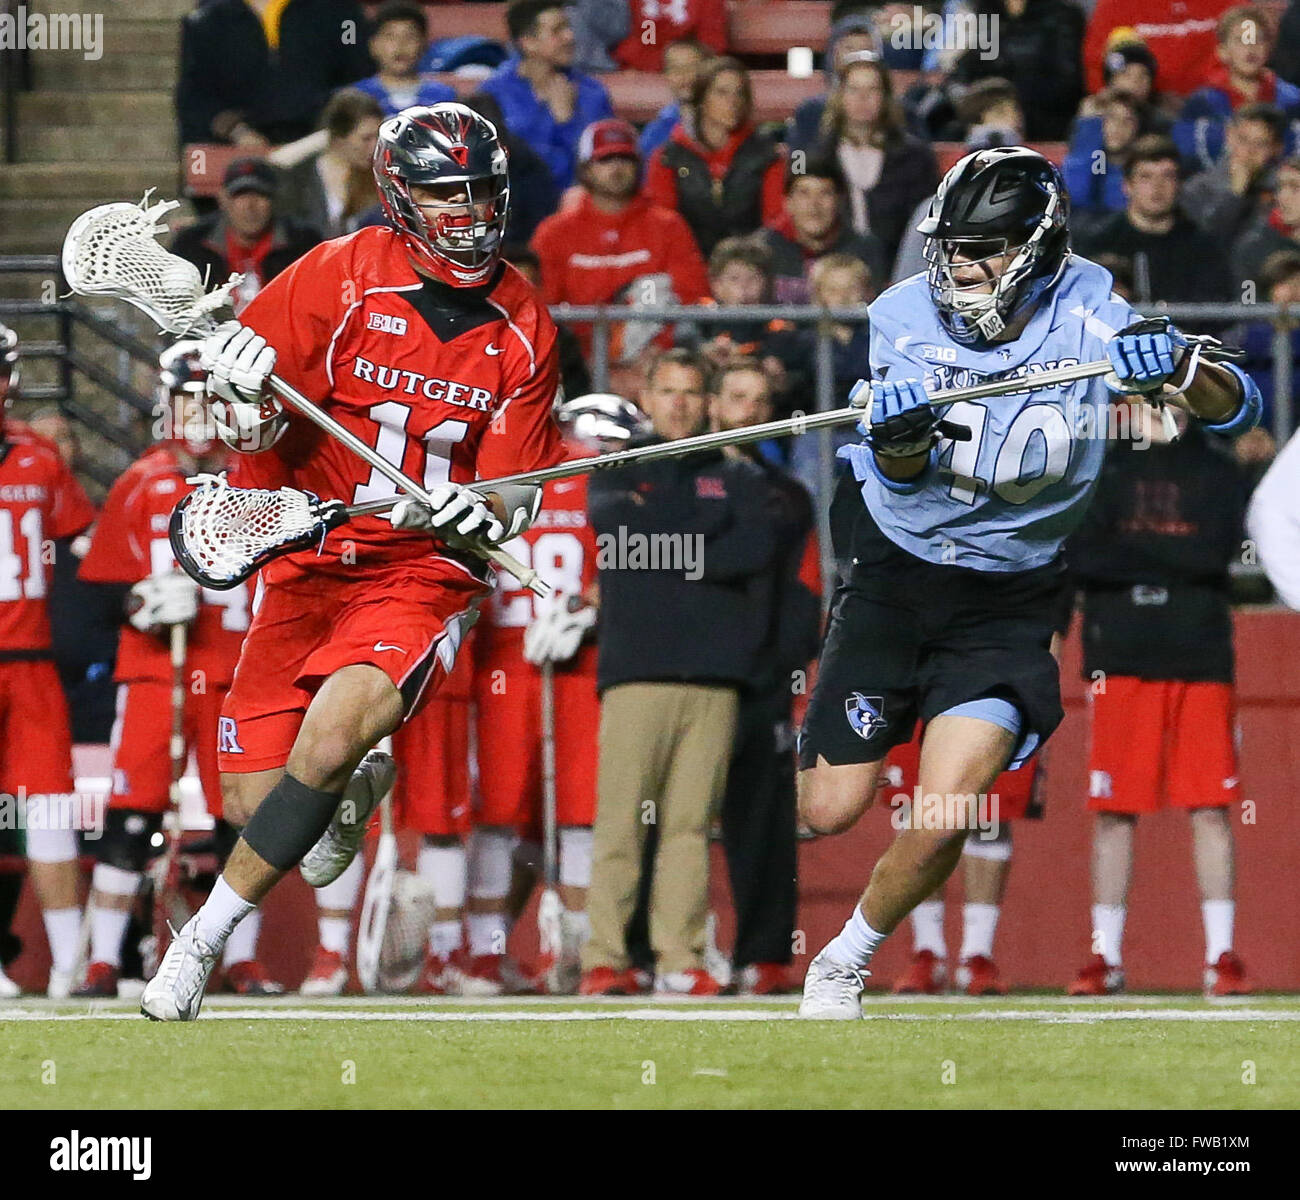 Piscataway, NJ, USA. 2nd Apr, 2016. Austin Spencer (40) tries to defend Jeff George (11) during an NCAA Lacrosse Stock Photo